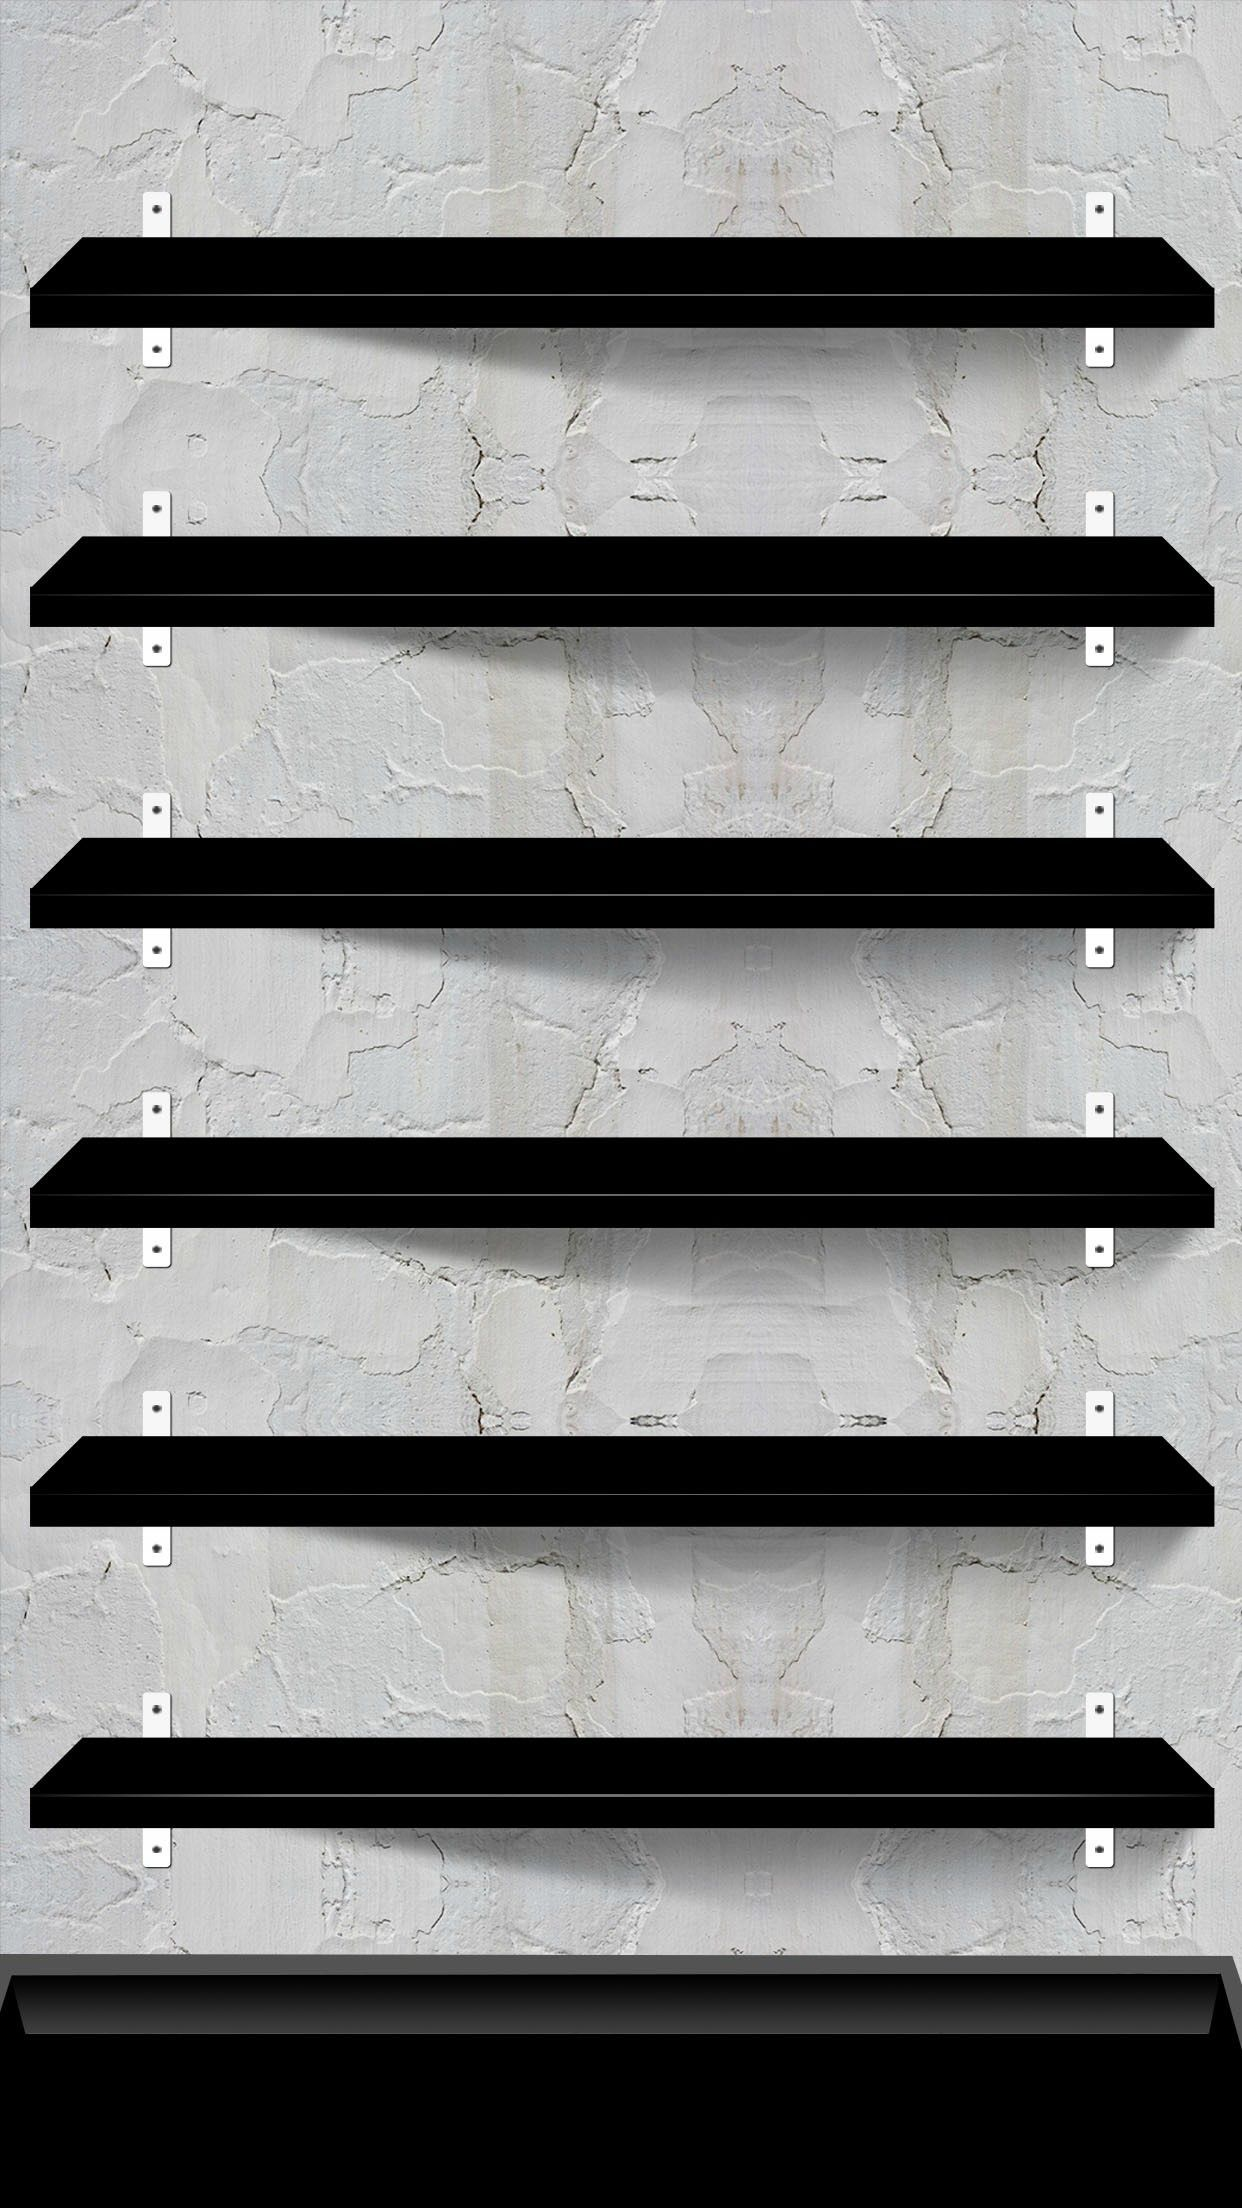 10 Creative Shelves Wallpapers For The IPhone 6 Plus